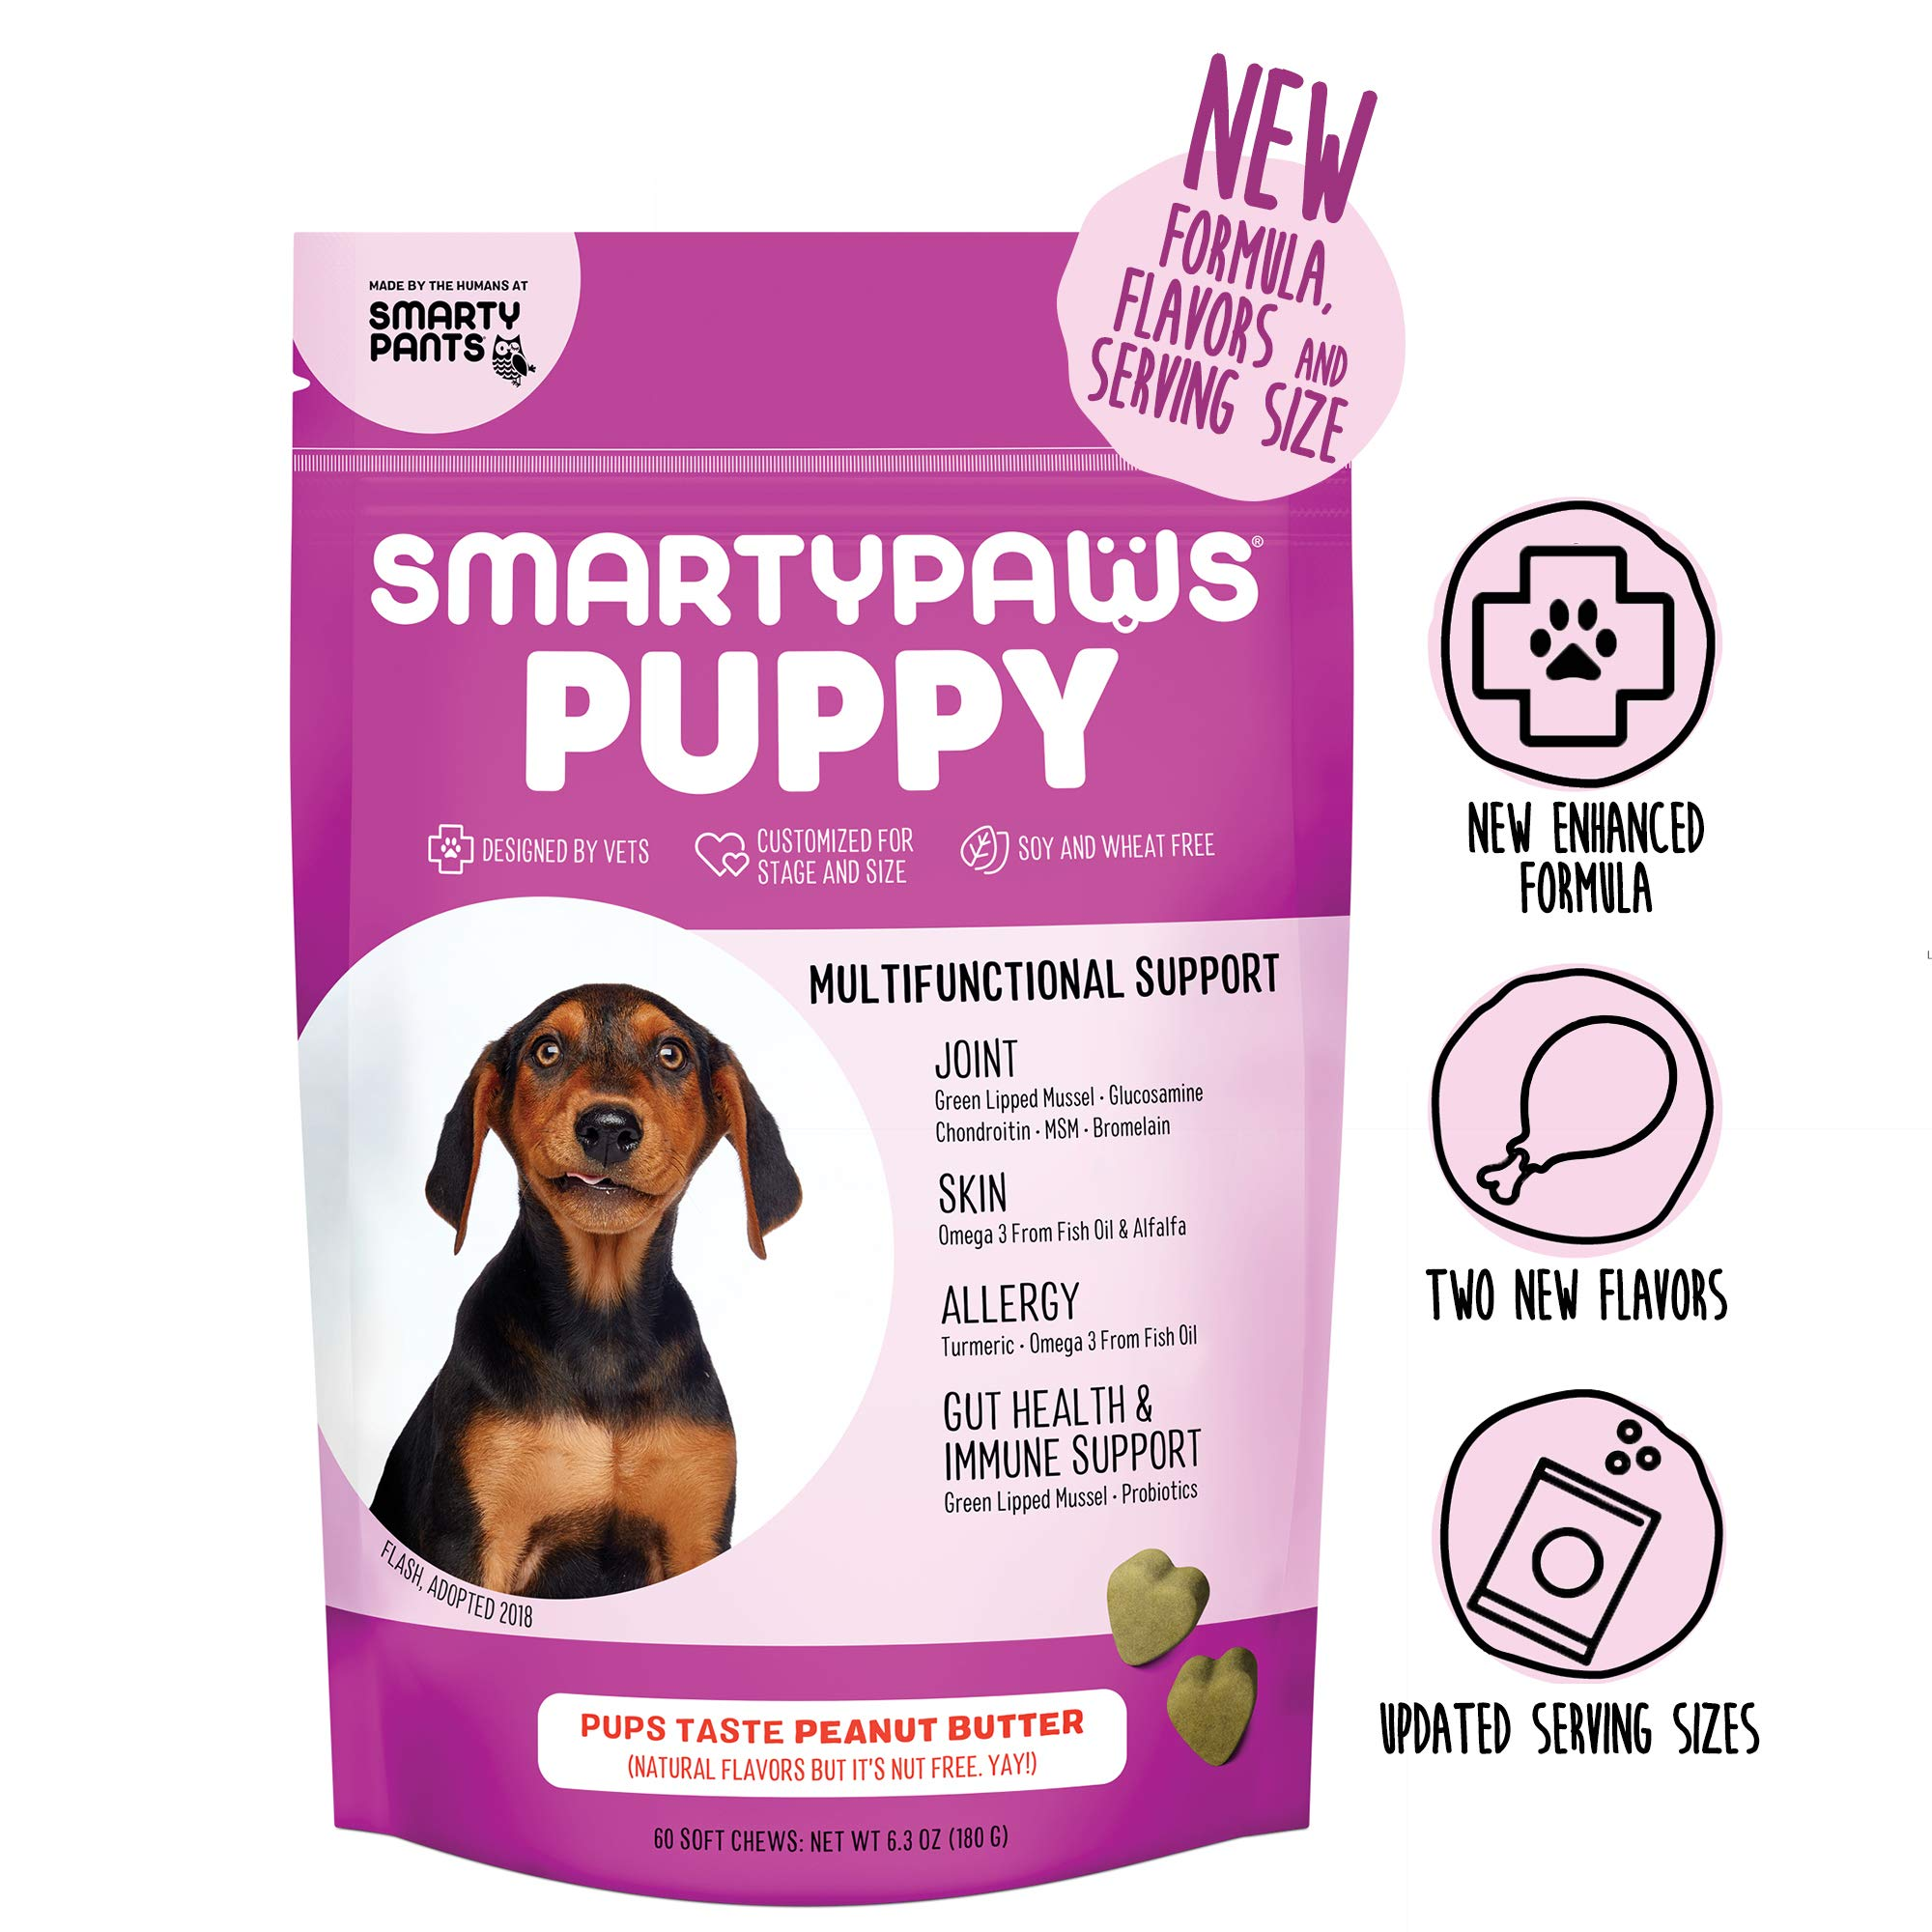 SmartyPaws Dog Supplement Chew for Puppies - Glucosamine, Probiotics, Chondroitin, Fish Oil Omega 3, MSM for Hip and Joint Support, Organic Turmeric, Peanut Butter Flavor (60 Ct) - Packaging May Vary by SmartyPants